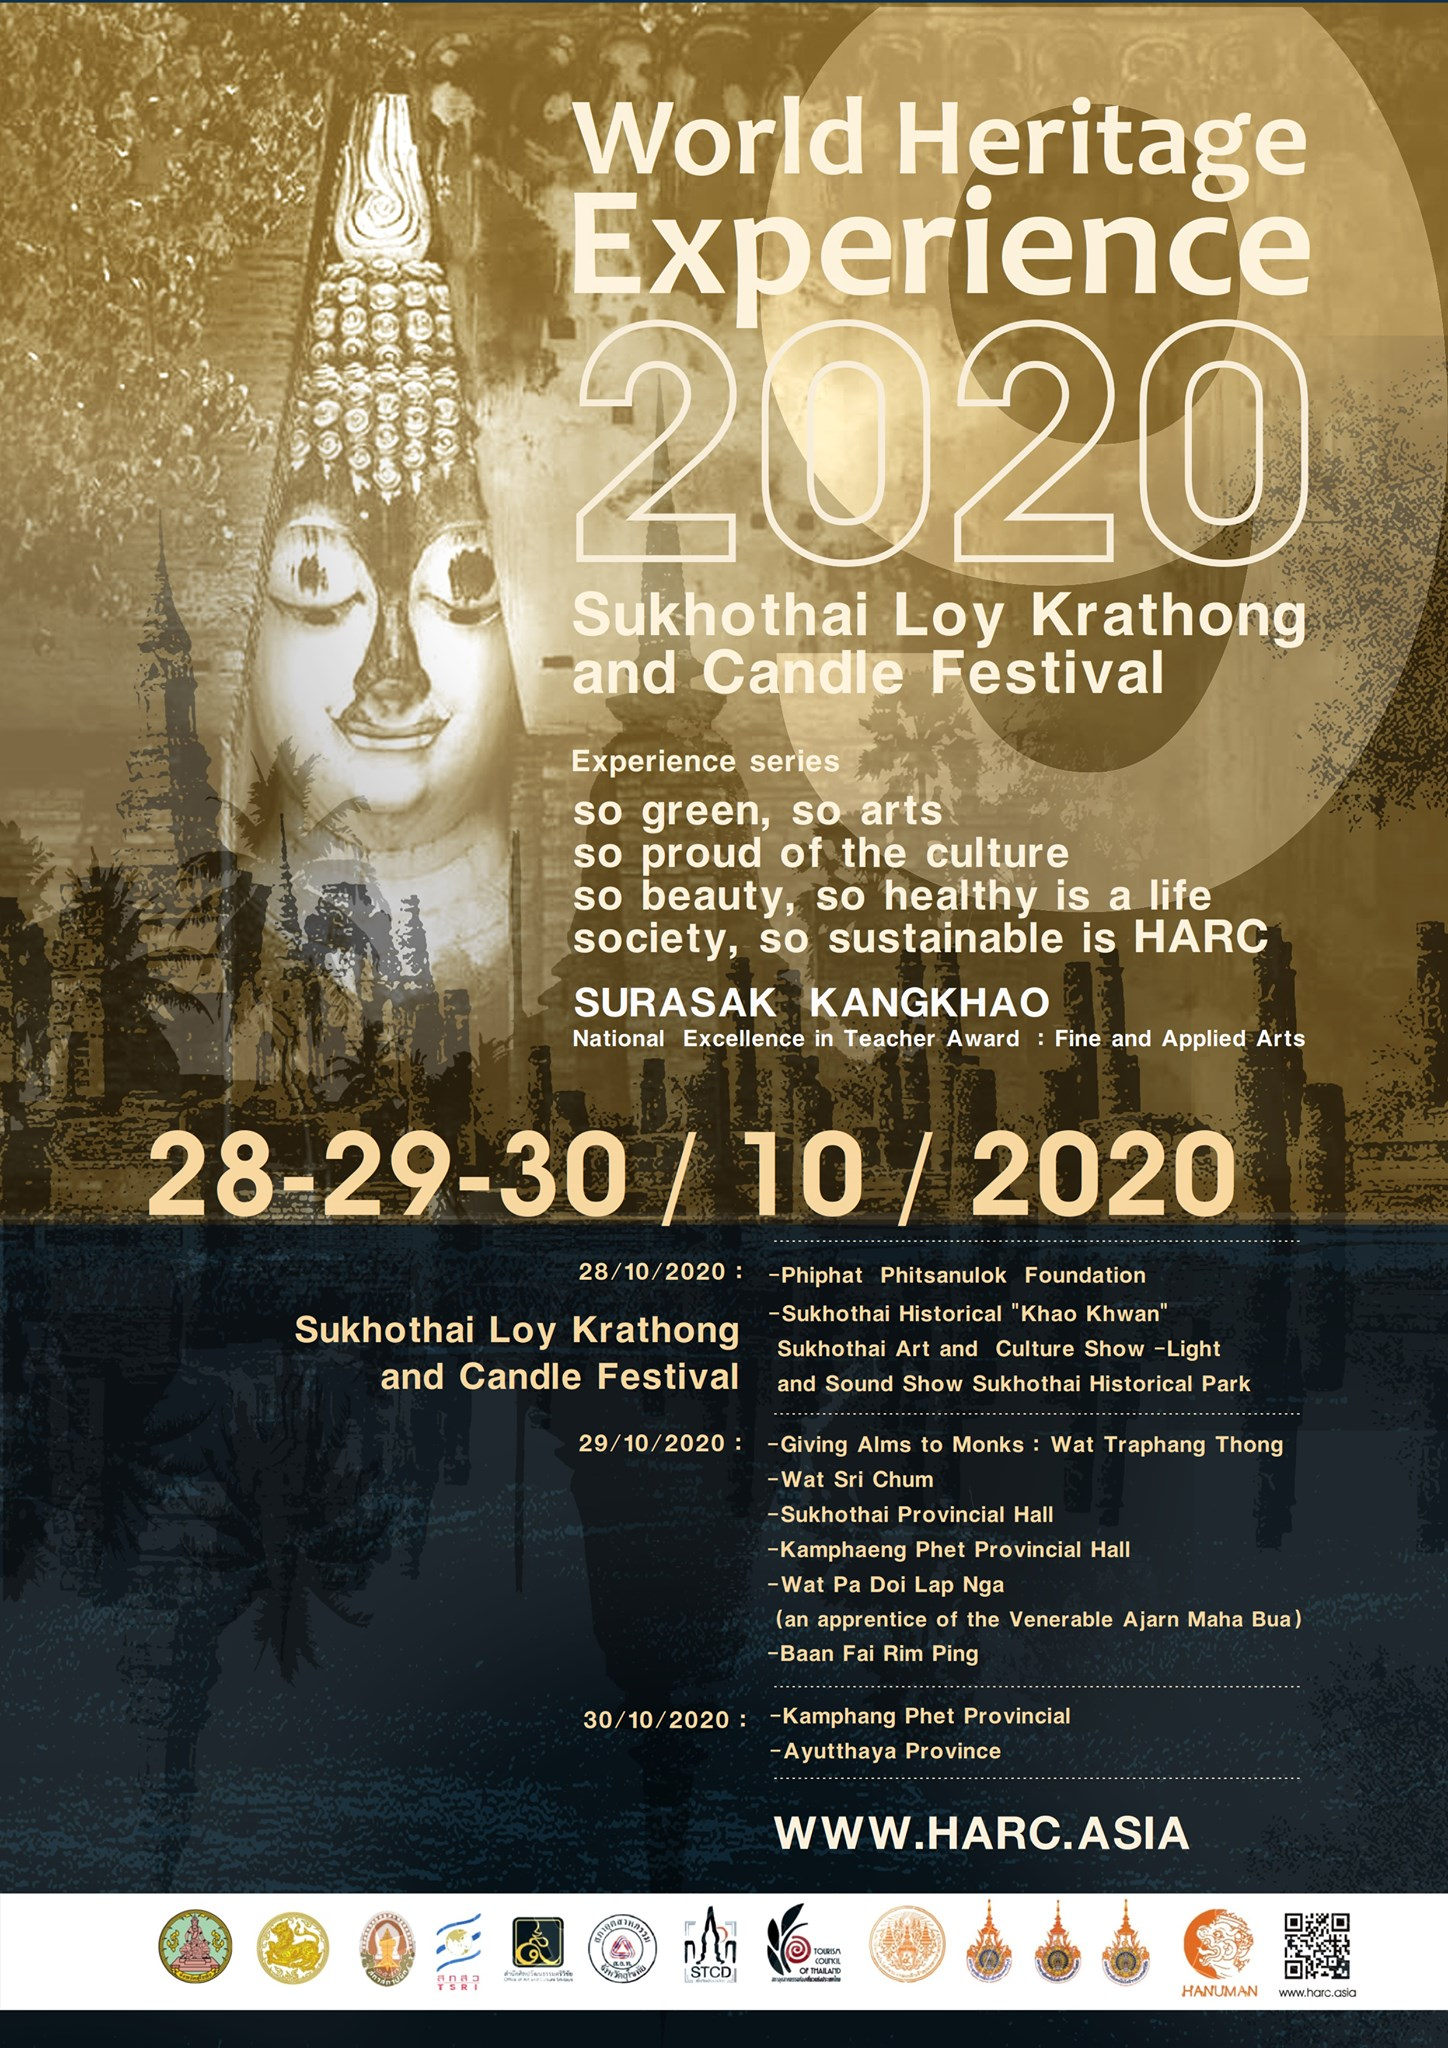 World Heritage Experience 2020. Sukhothai Loy Krathong and candle festival